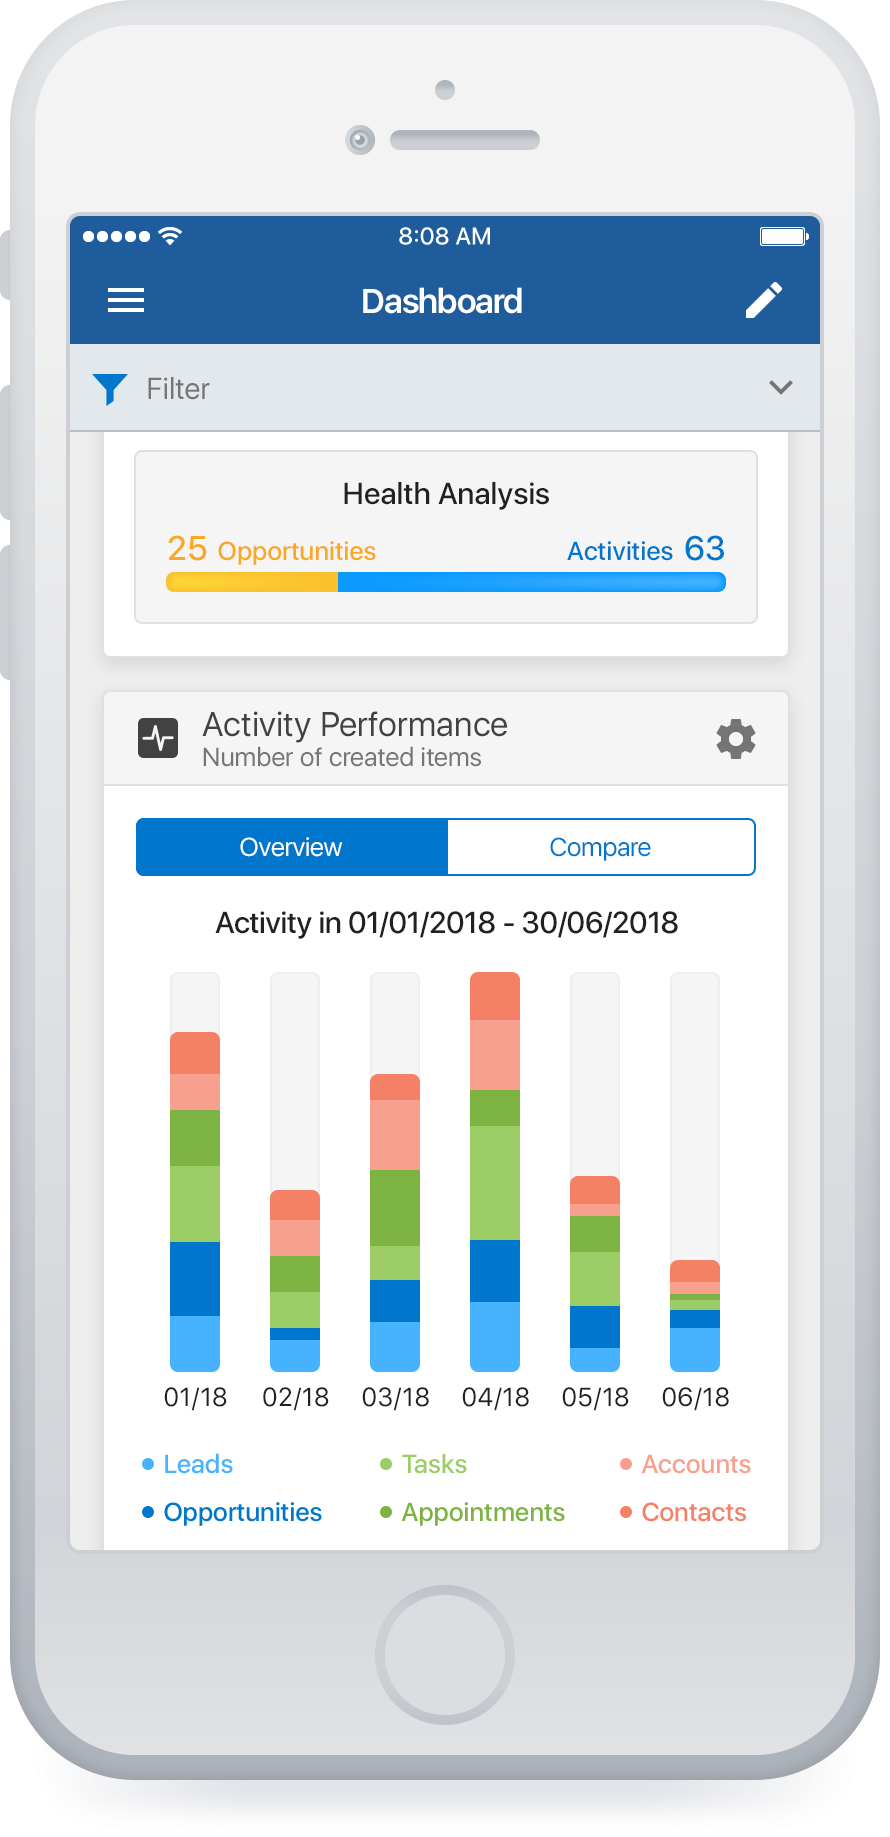 Mobile crm sales dashboard view